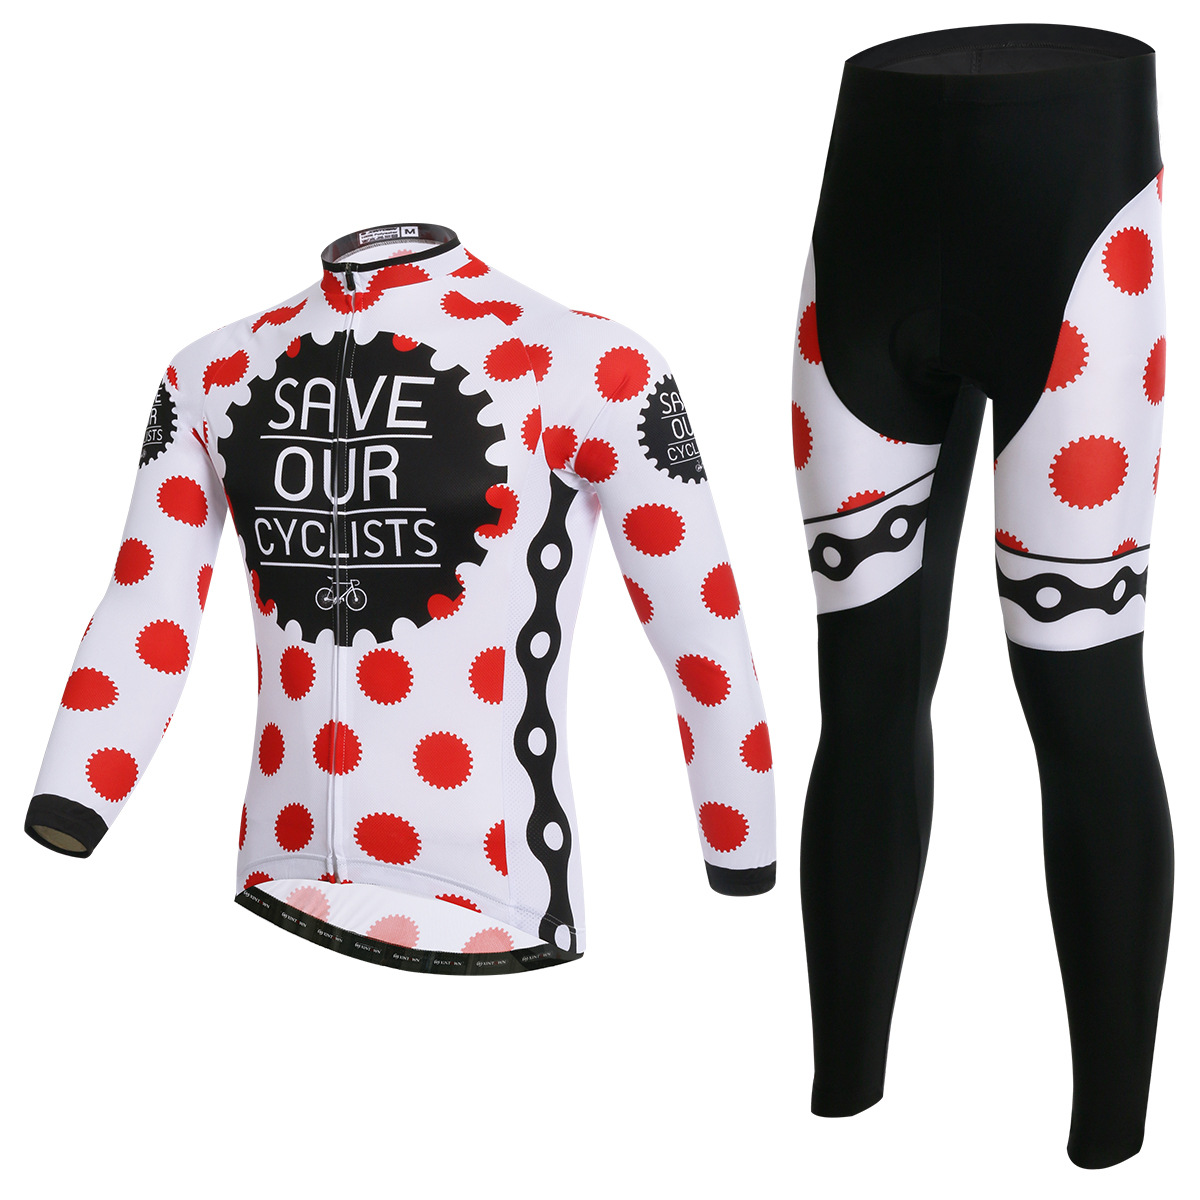 XINTOWN Fate Cycling Long Sleeve Suit bike riding jersey wear clothes spring autumn moisture perspiration quick-drying underwear